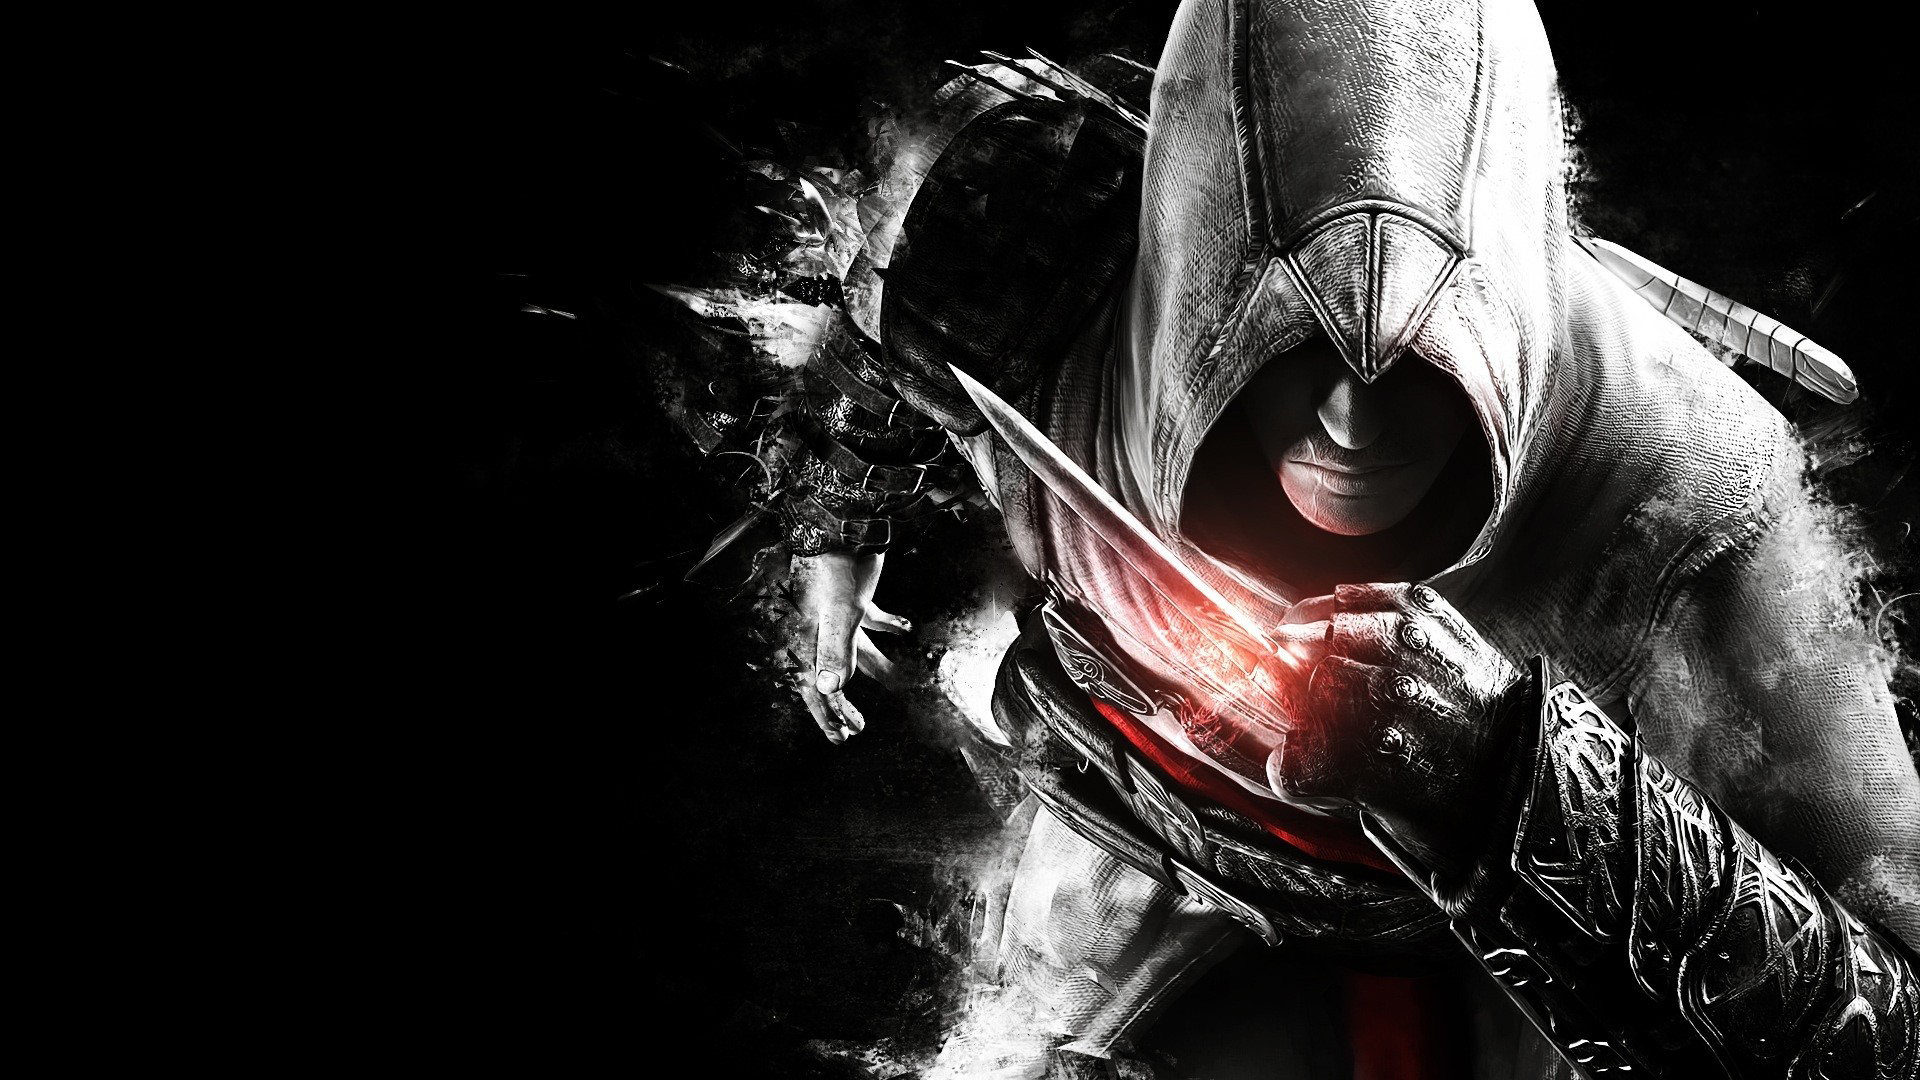 assassins creed artwork A1